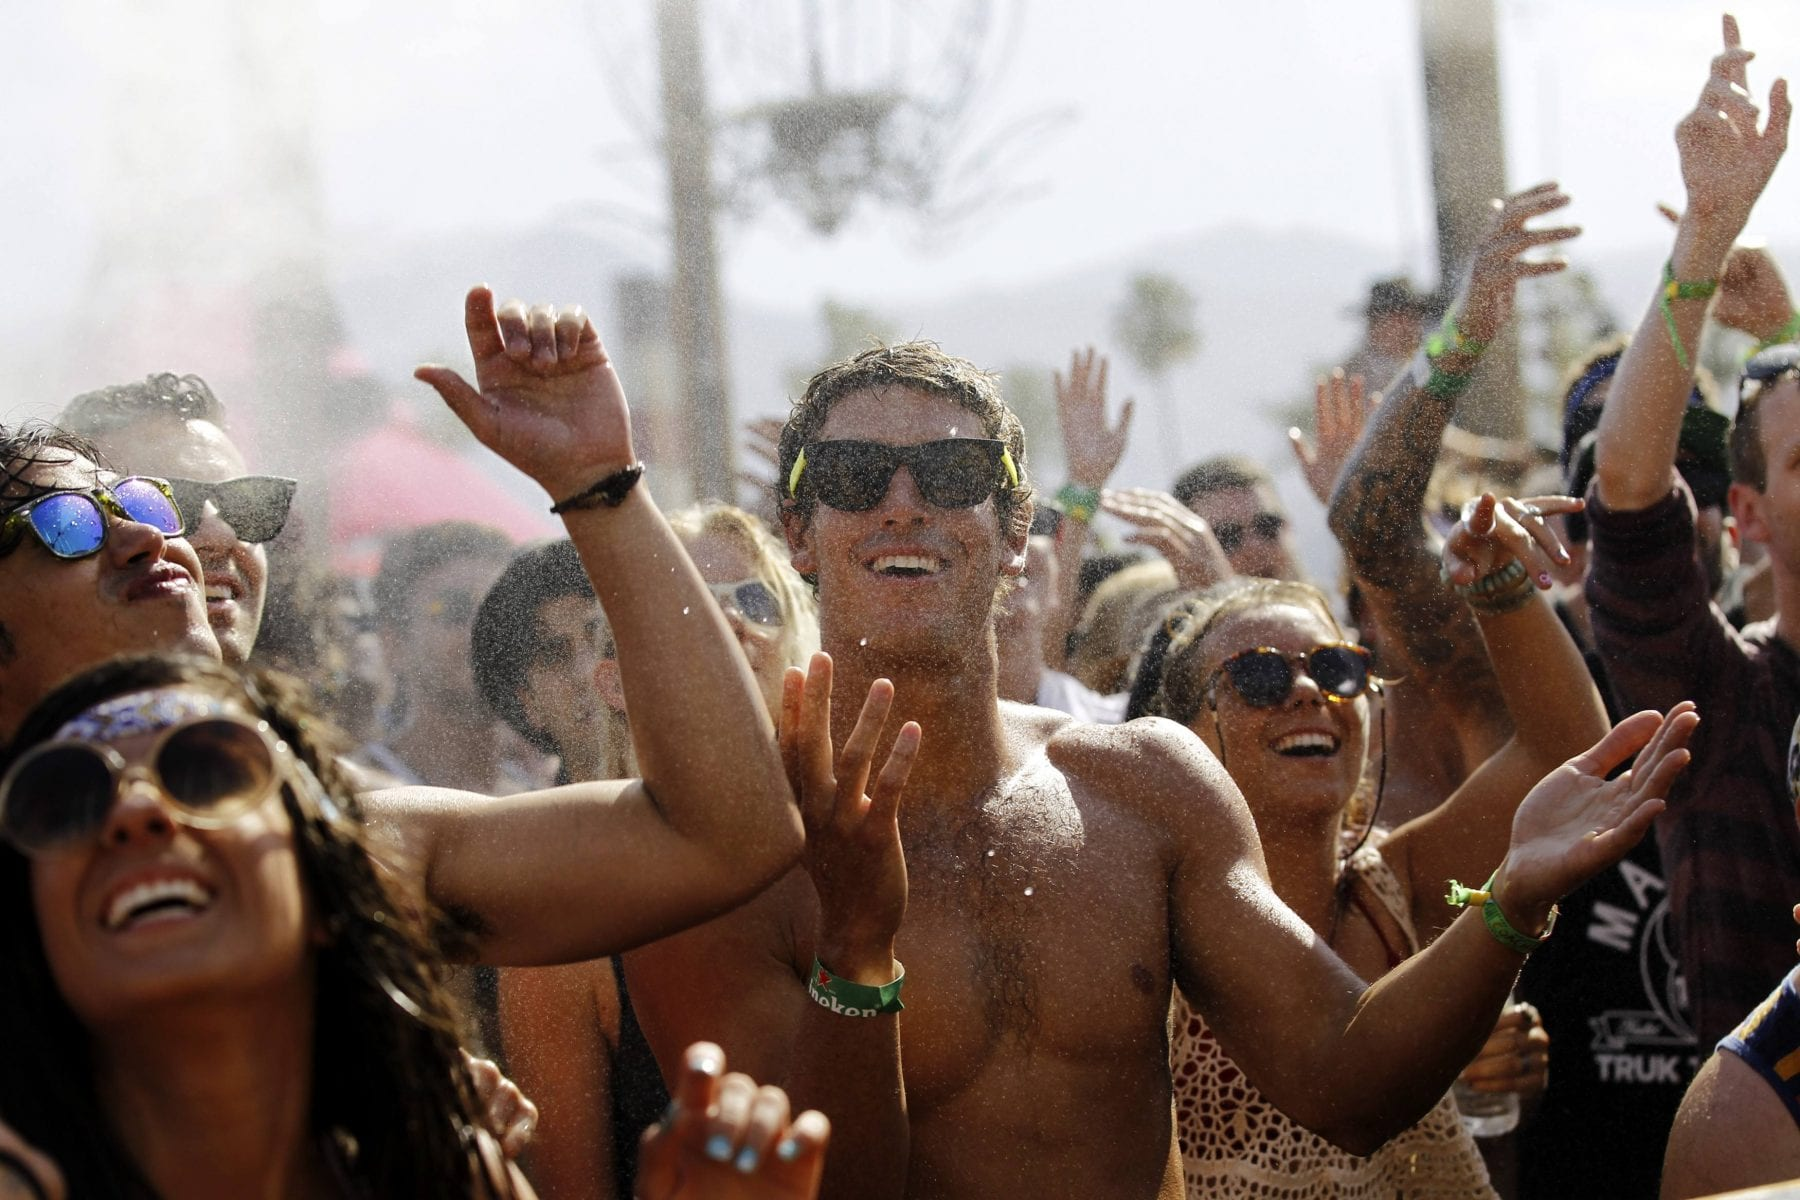 Free Water Now Required at Amsterdam Music Festivals